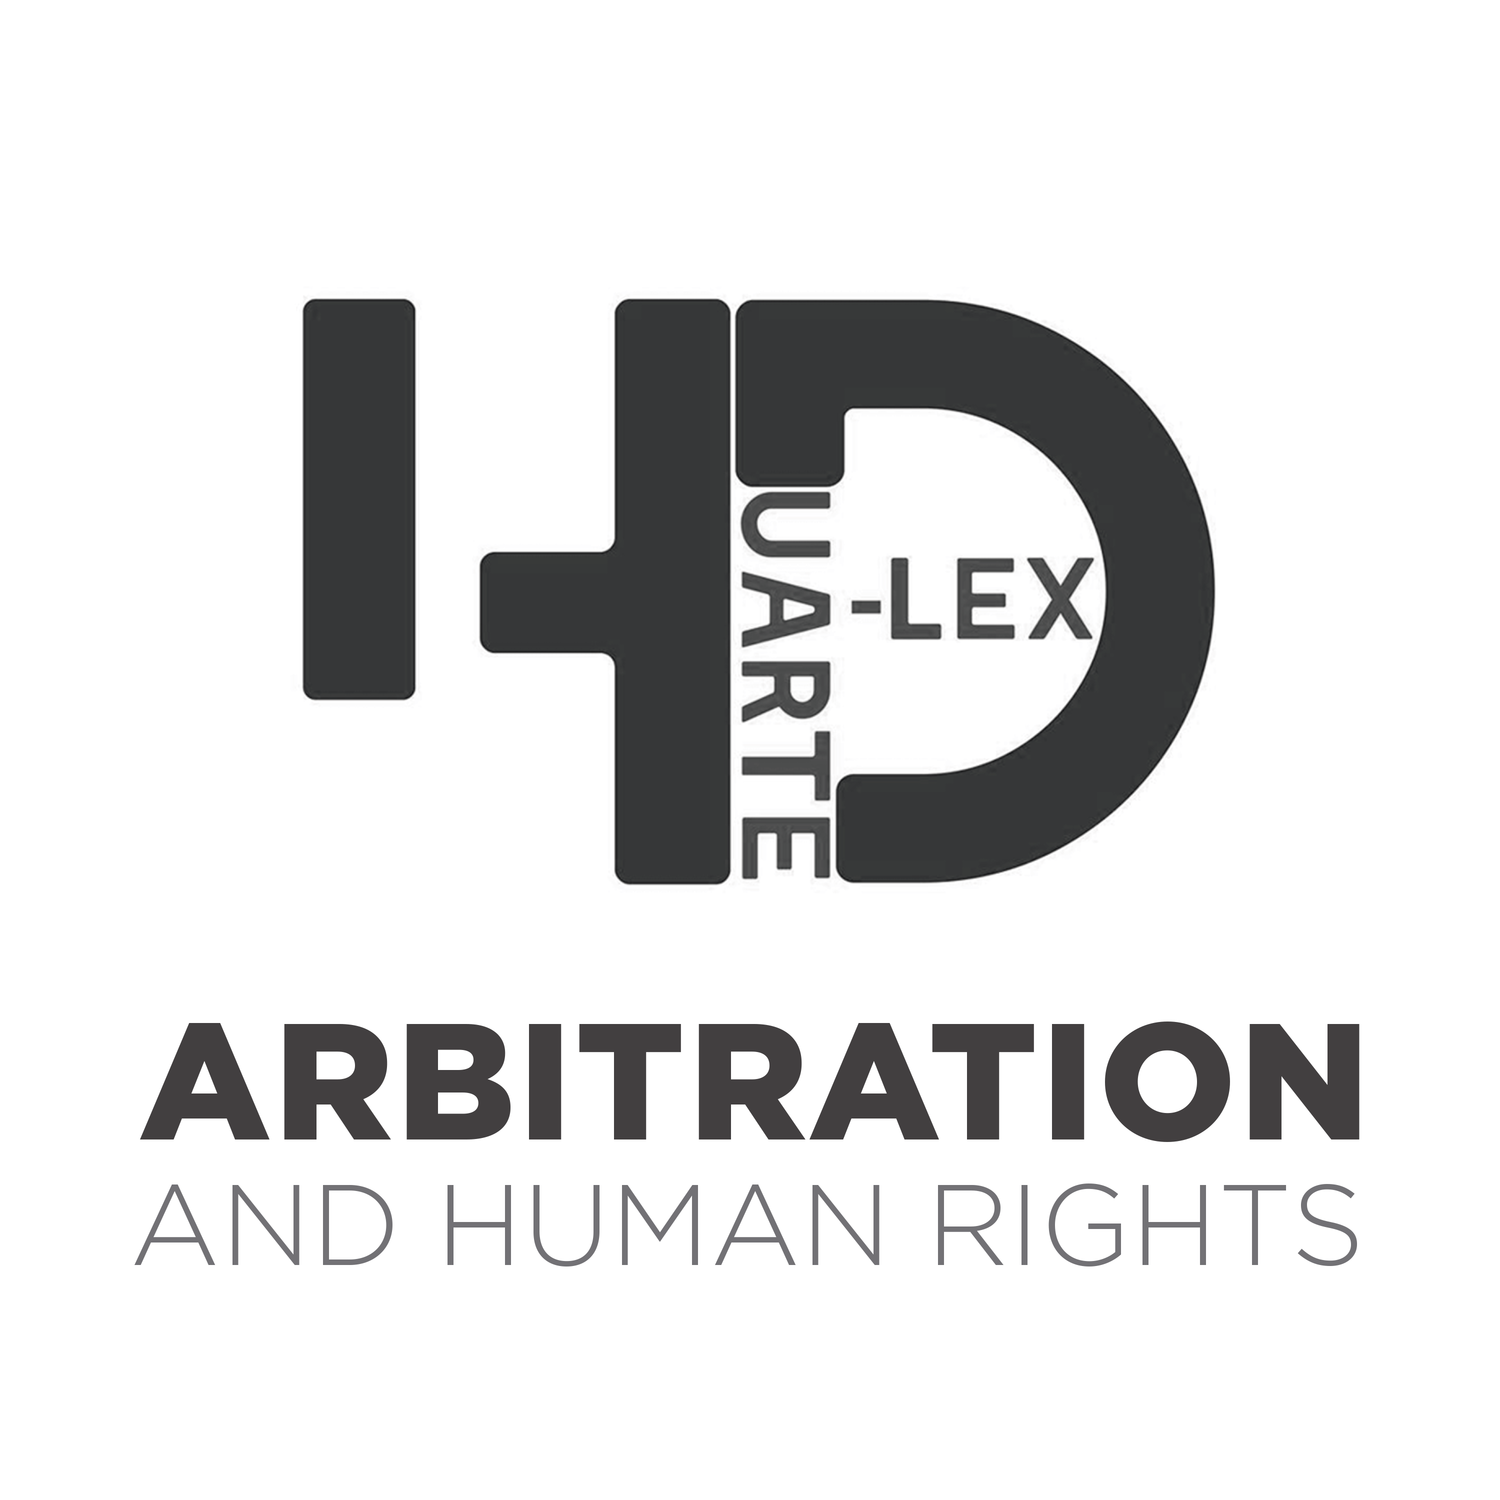 Arbitration & Human Rights boutique law firm